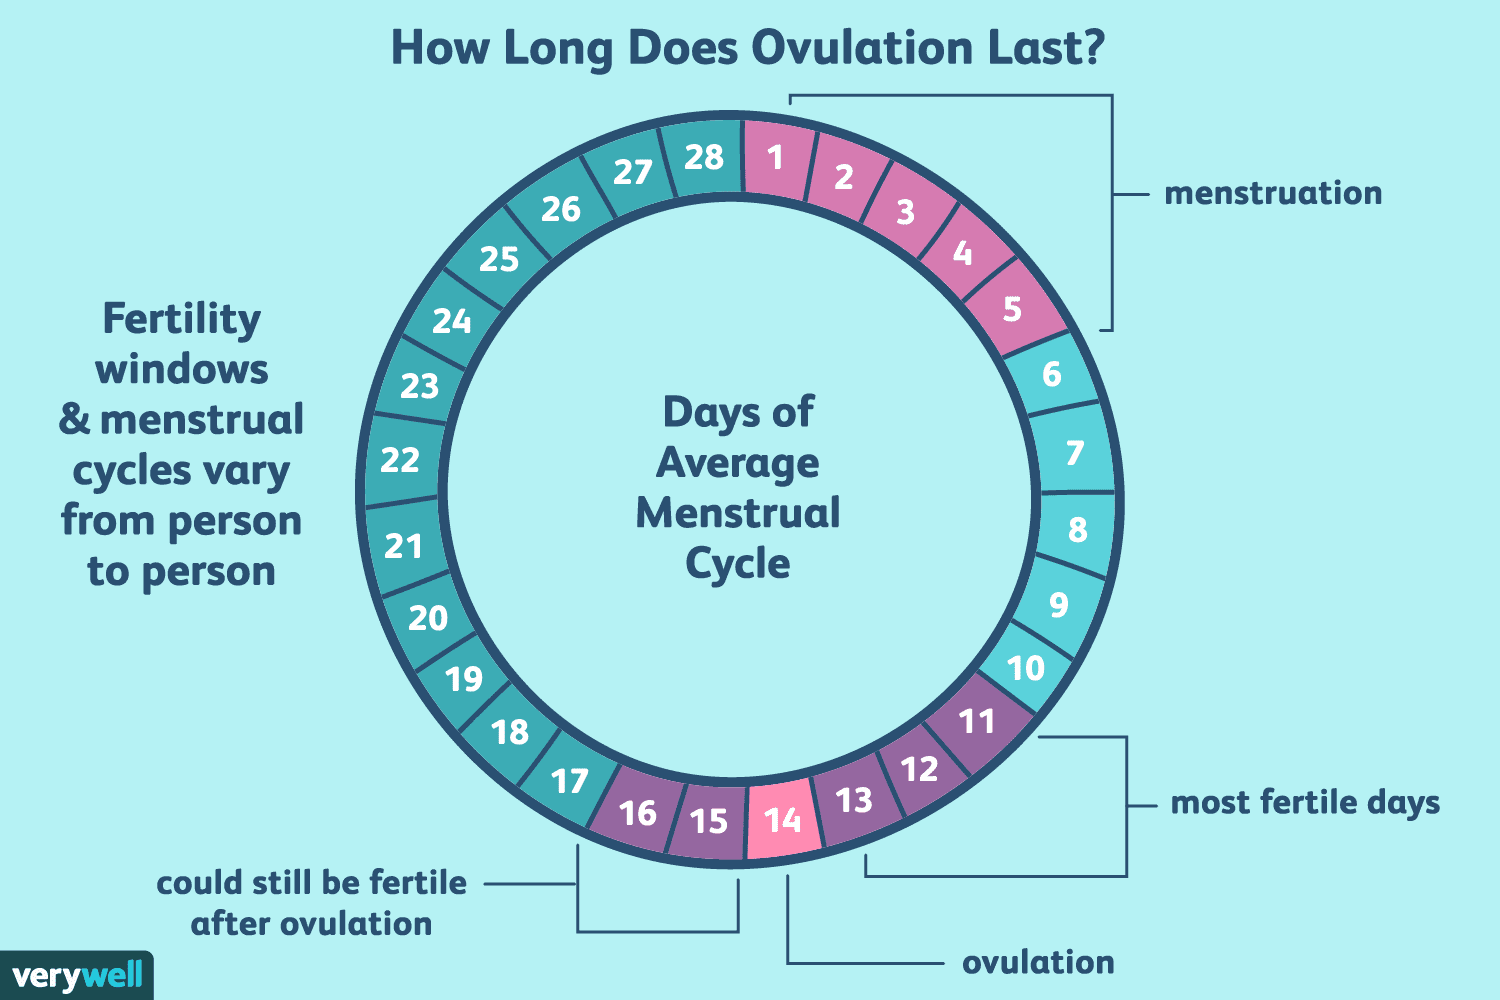 how long does ovulation and your fertile window last?